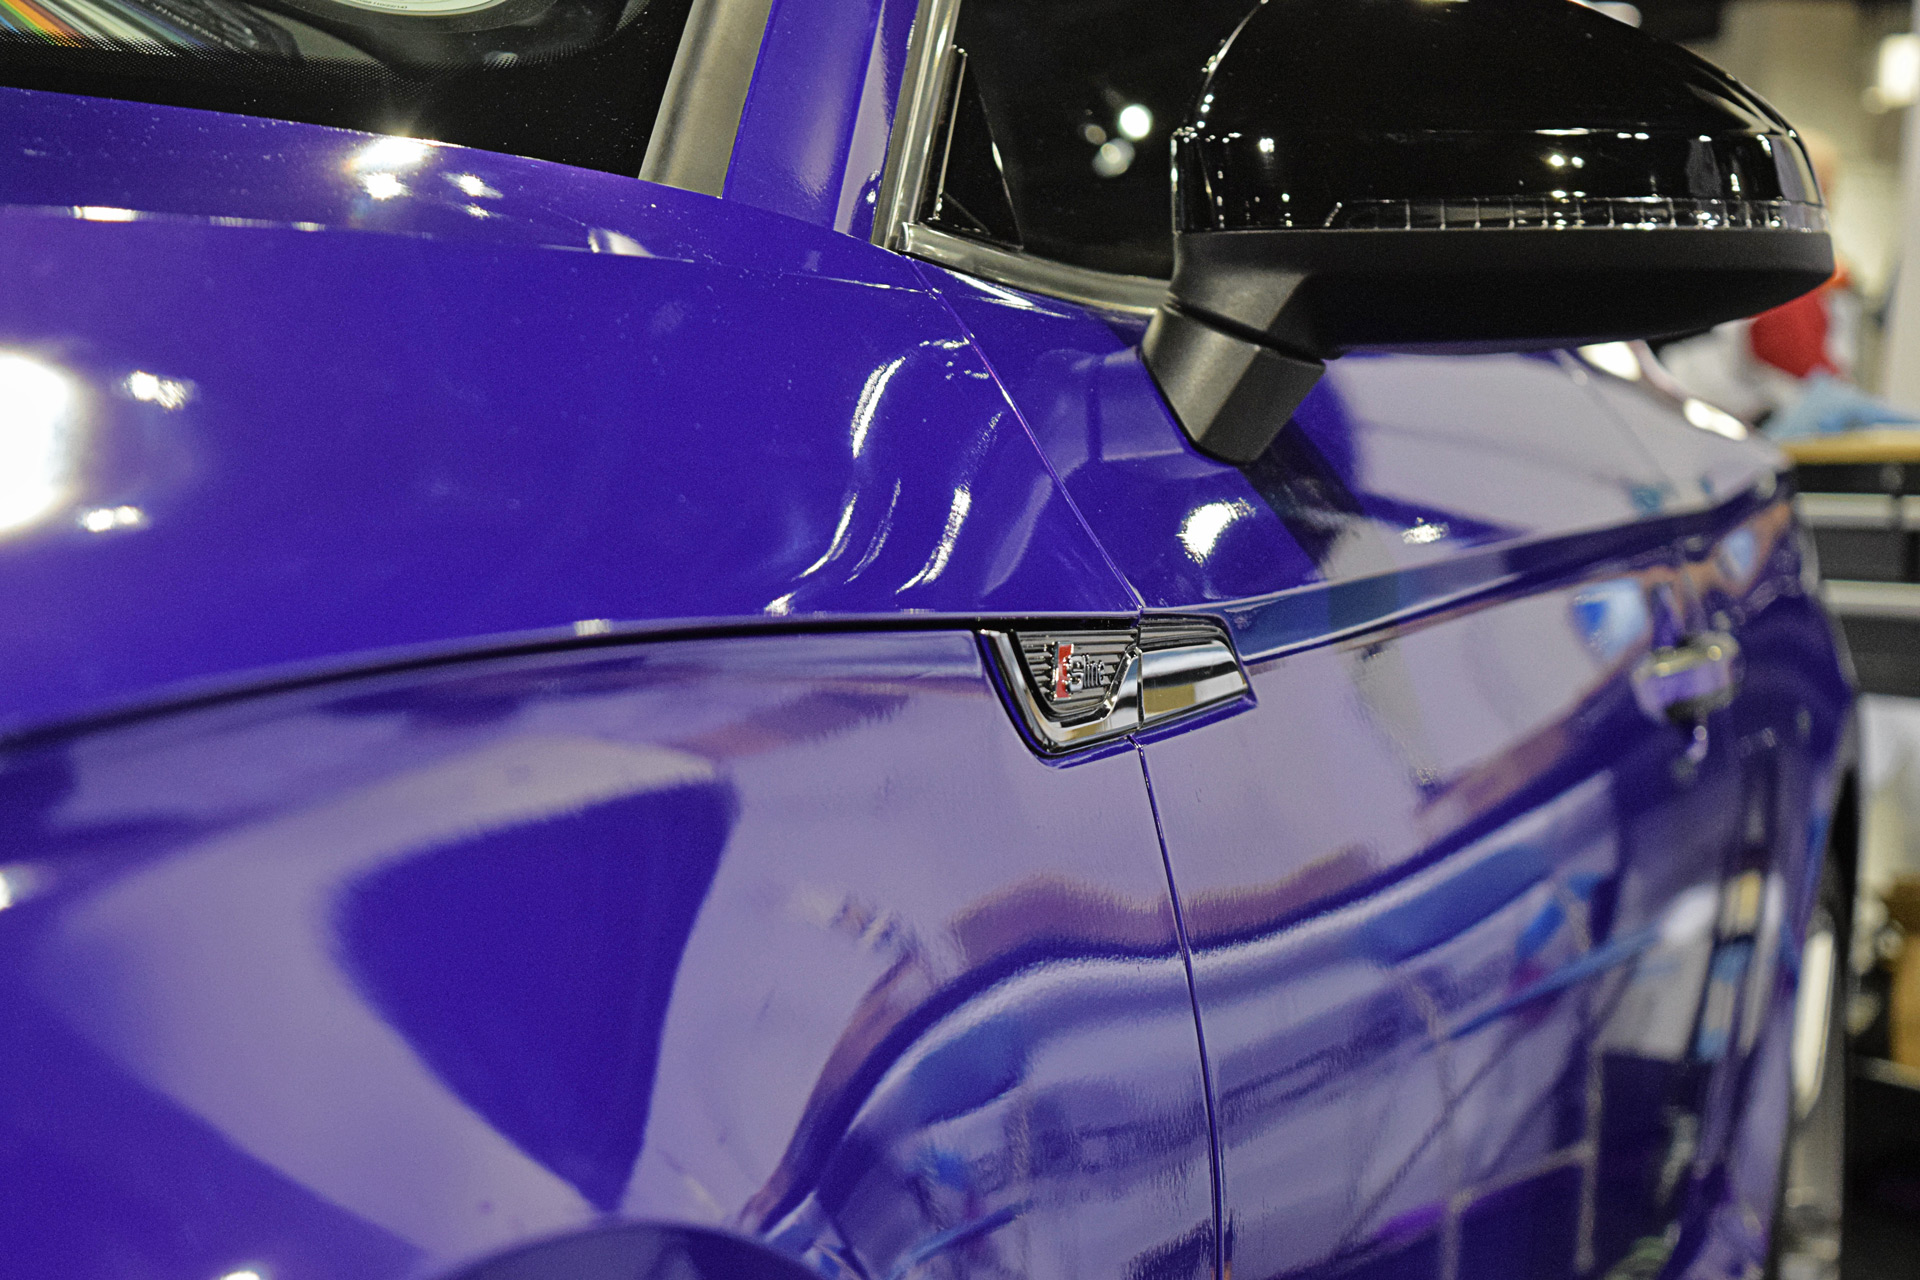 Choosing the Right Vinyl Wrap For Your Vehicle - What to Know